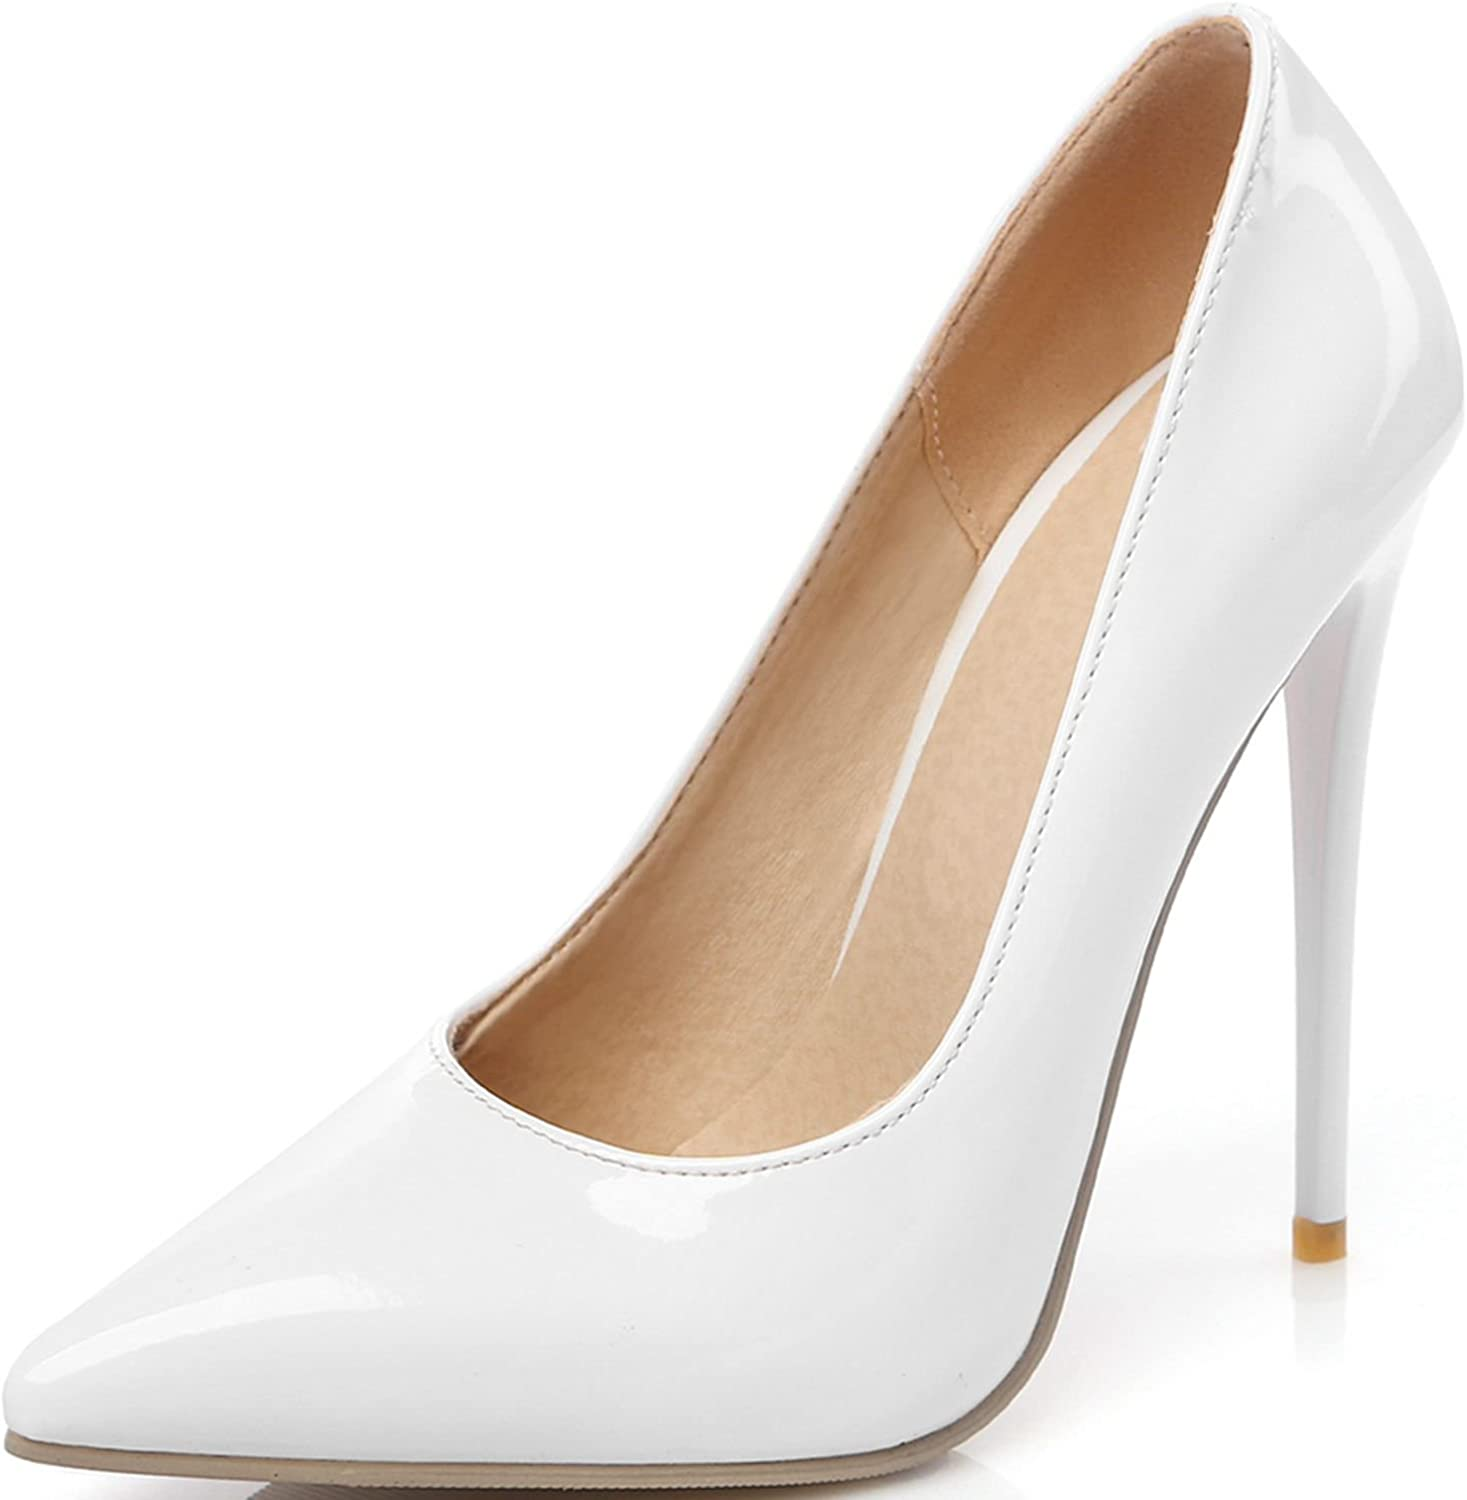 KingRover Women's Pointy Toe High Heels Slip On Stilettos Large Size Wedding Party Evening Pumps shoes